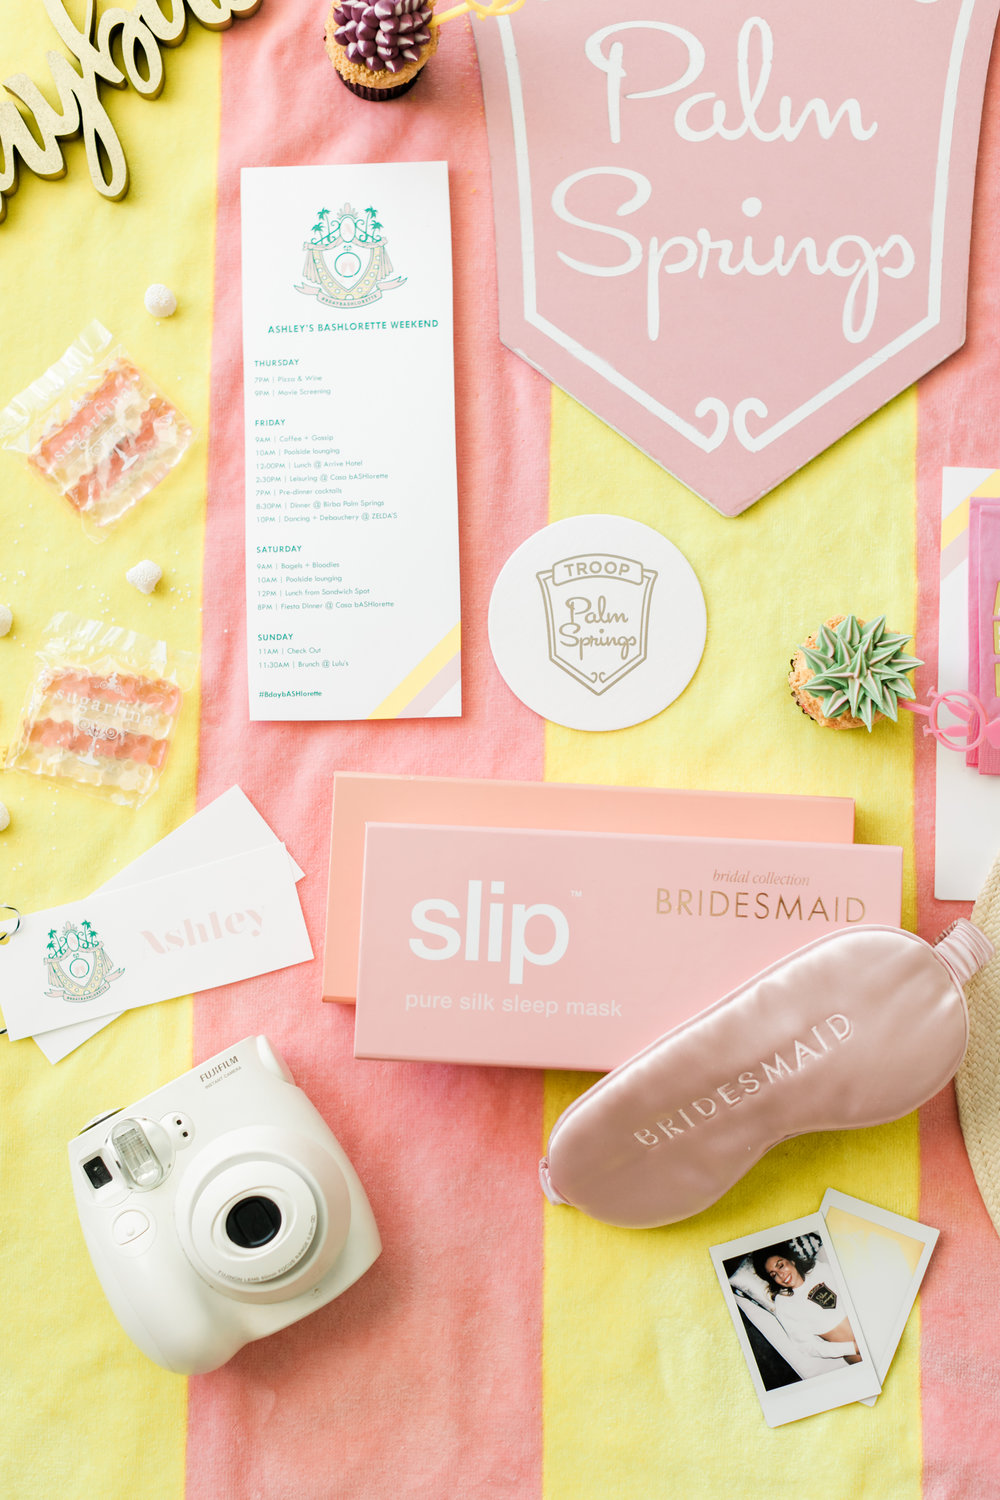 Bachelorette Theme Idea: Palm Springs Chic with Beverly Hills Hotel Twist